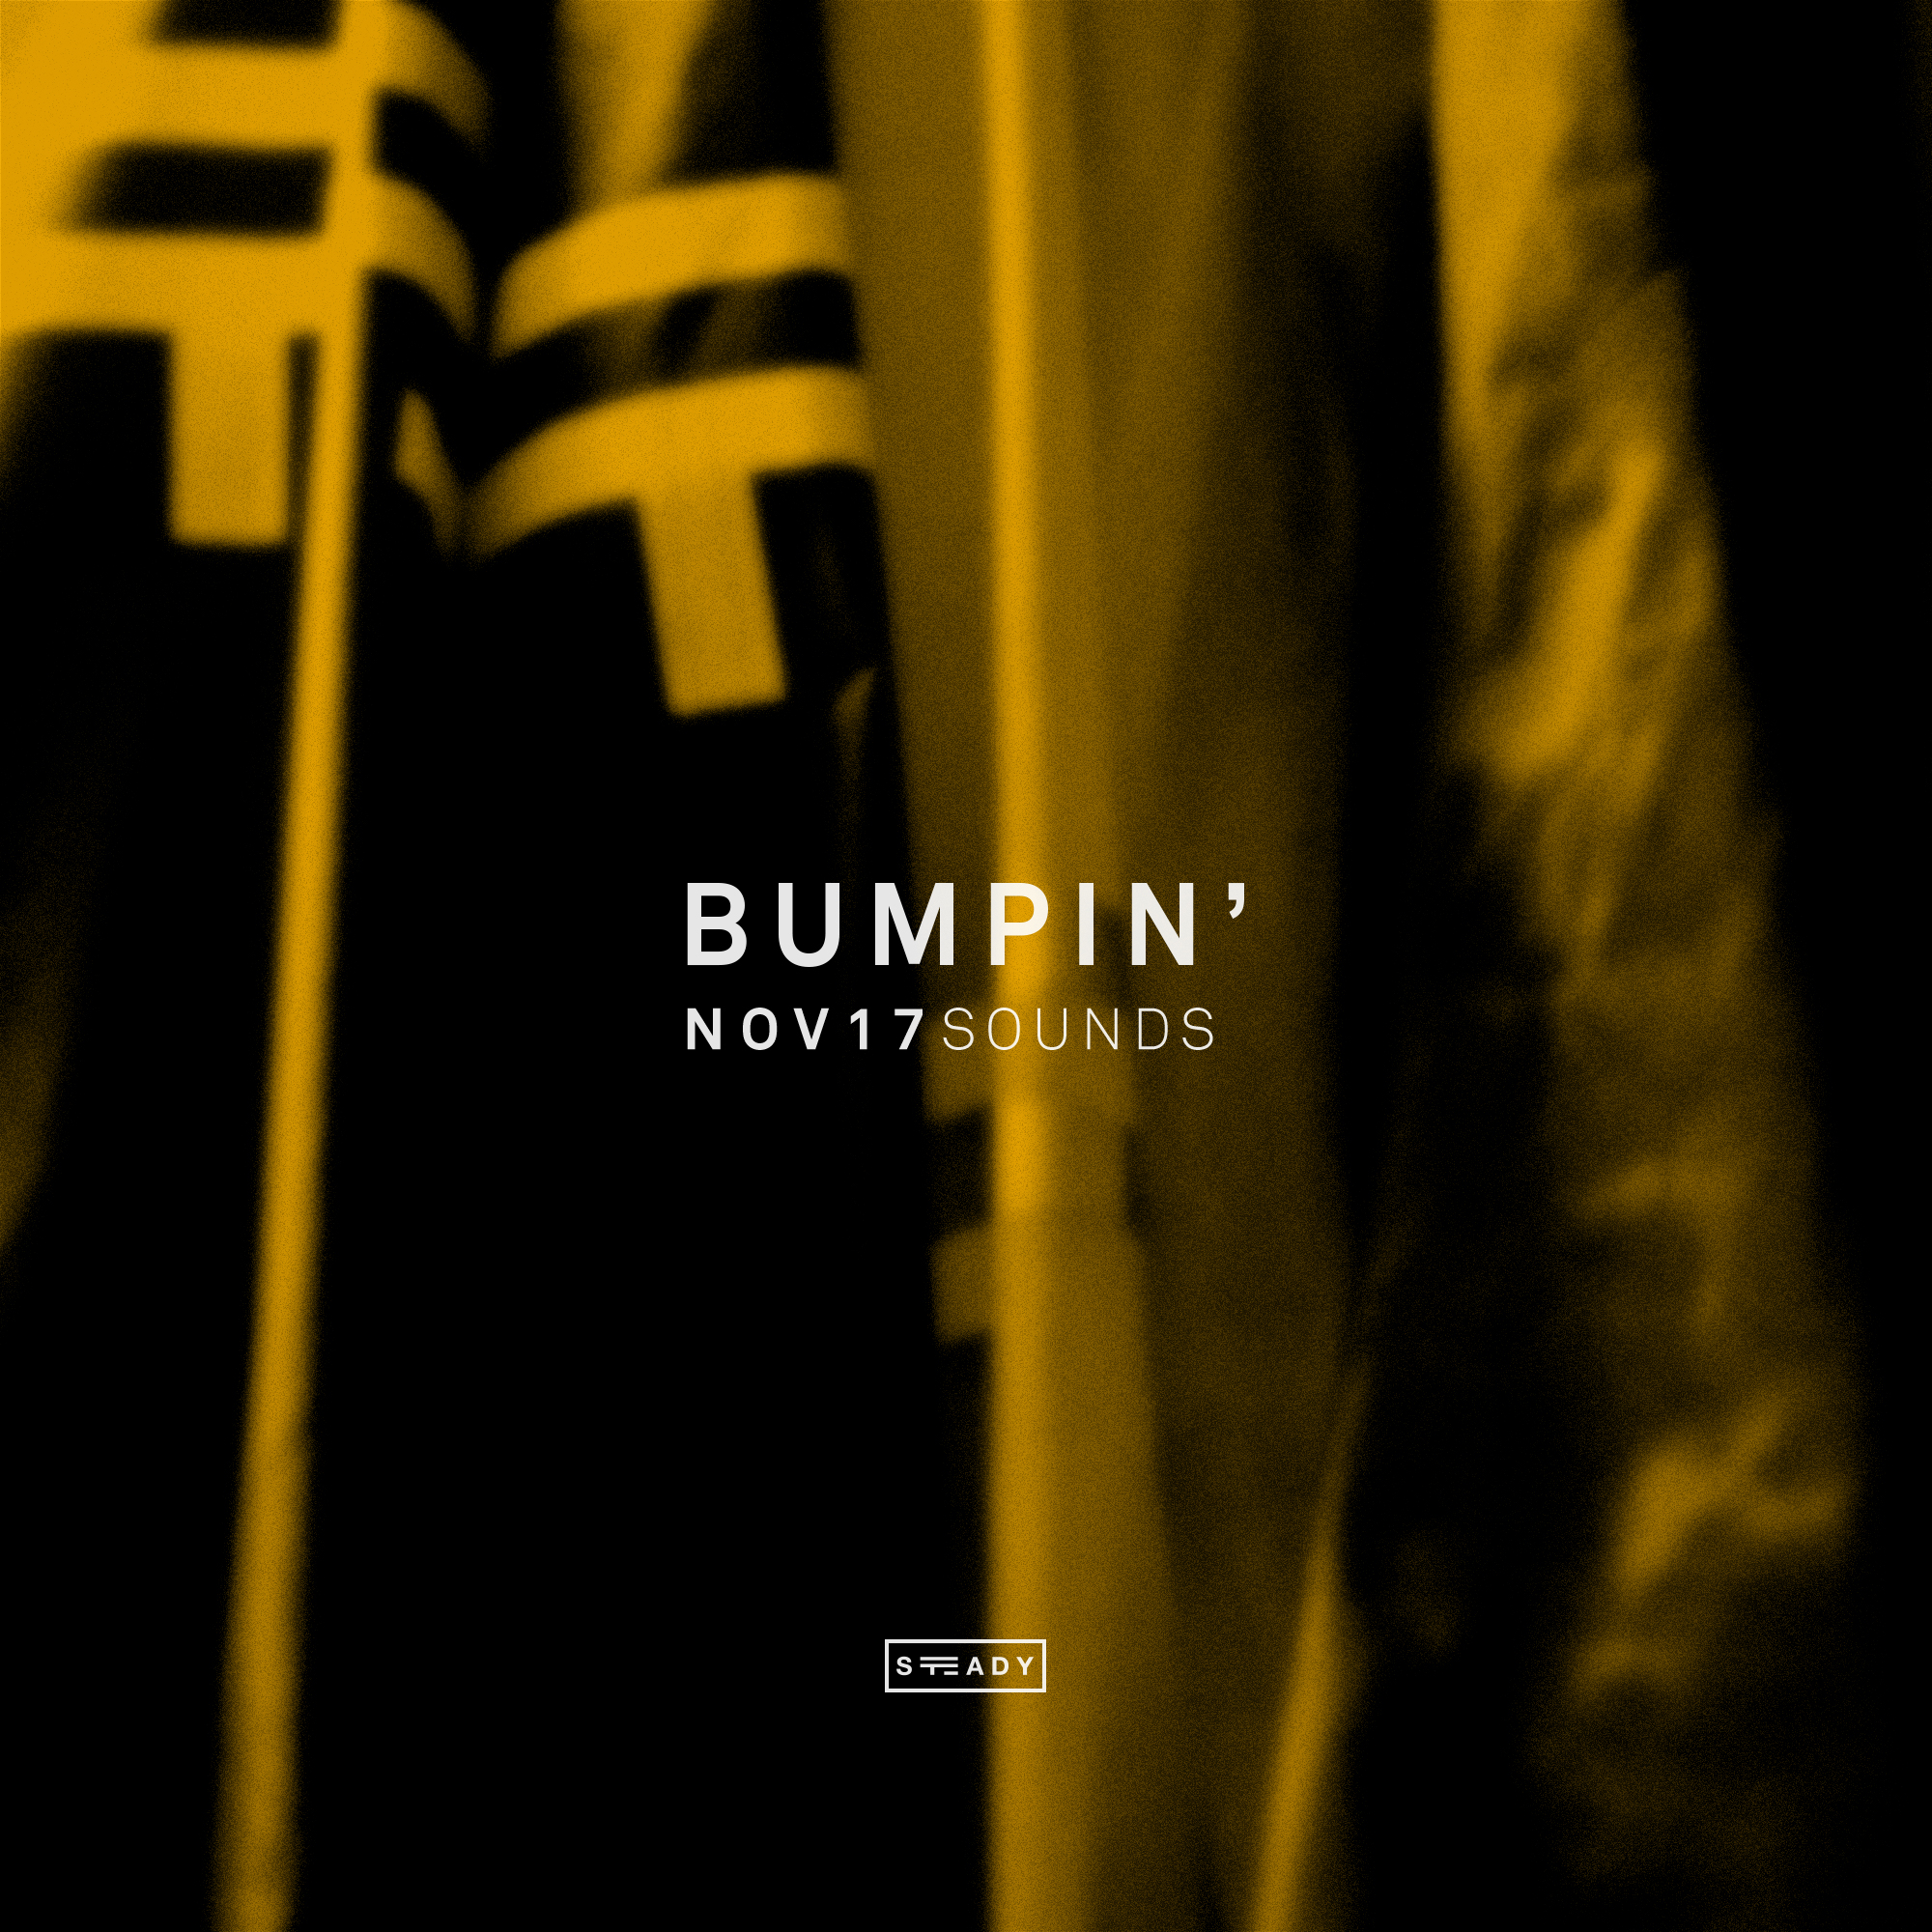 STEADY BUMPIN': NOV17 SOUNDS